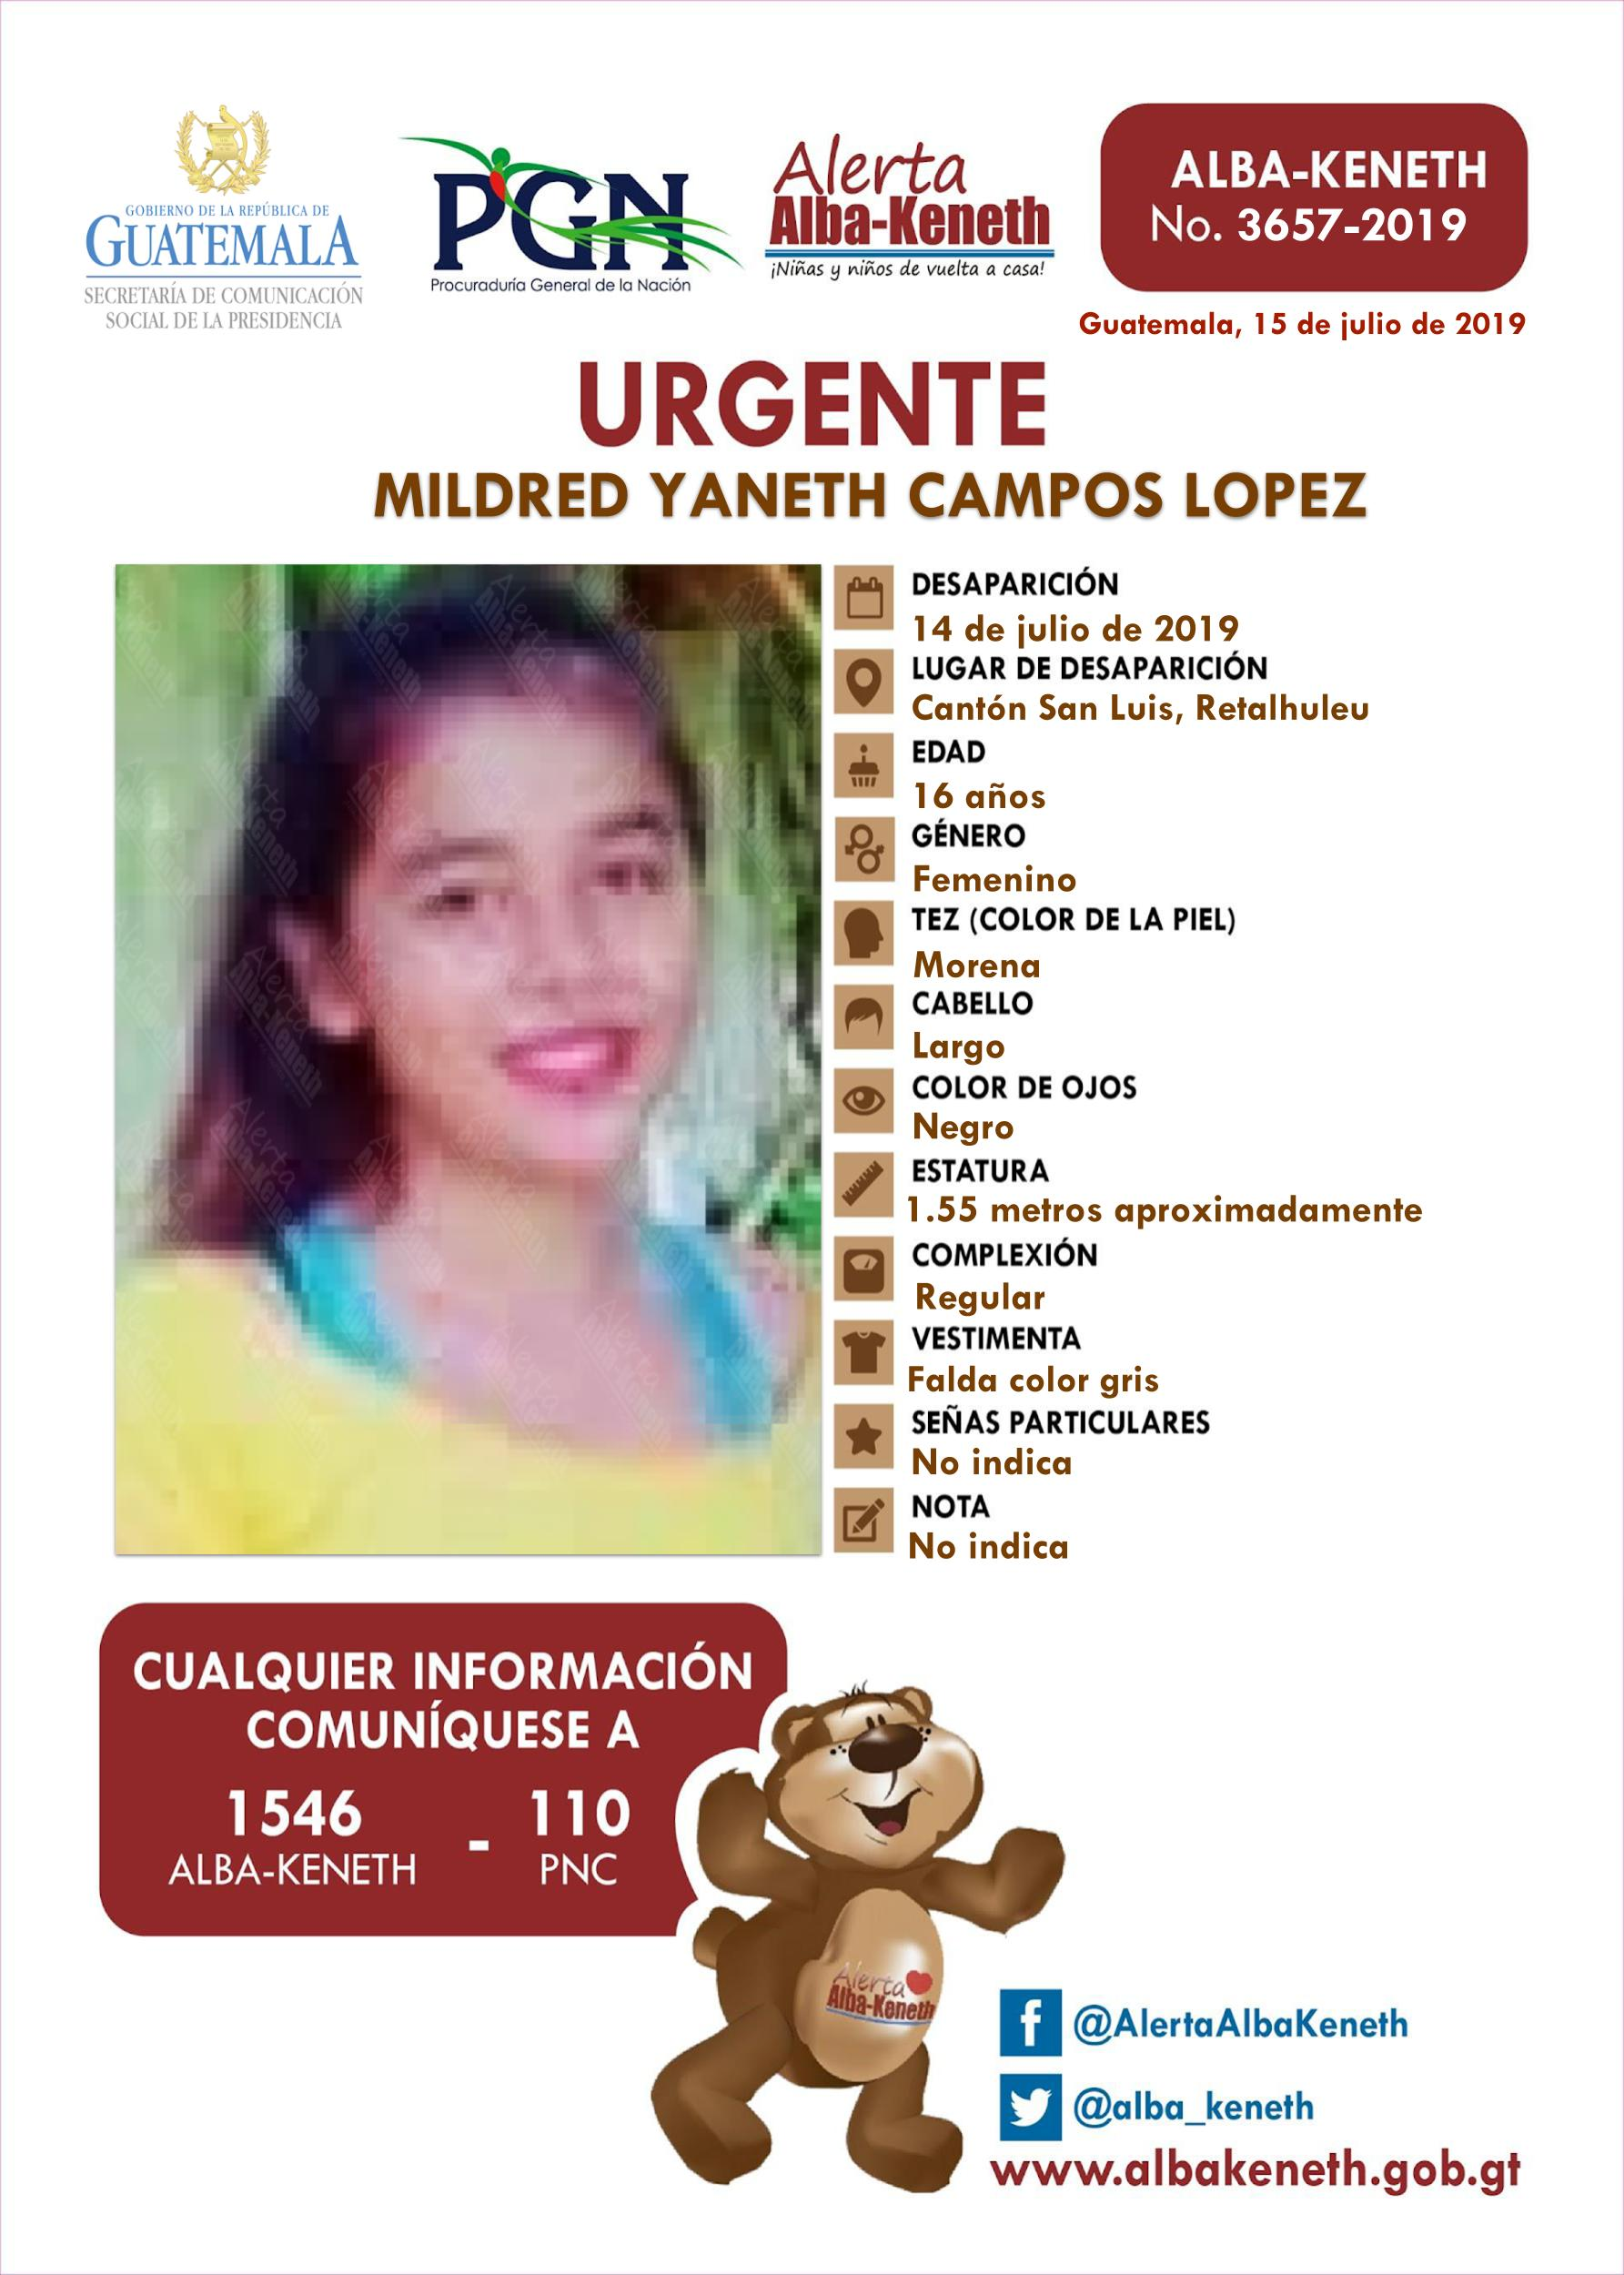 Mildred Yaneth Campos Lopez